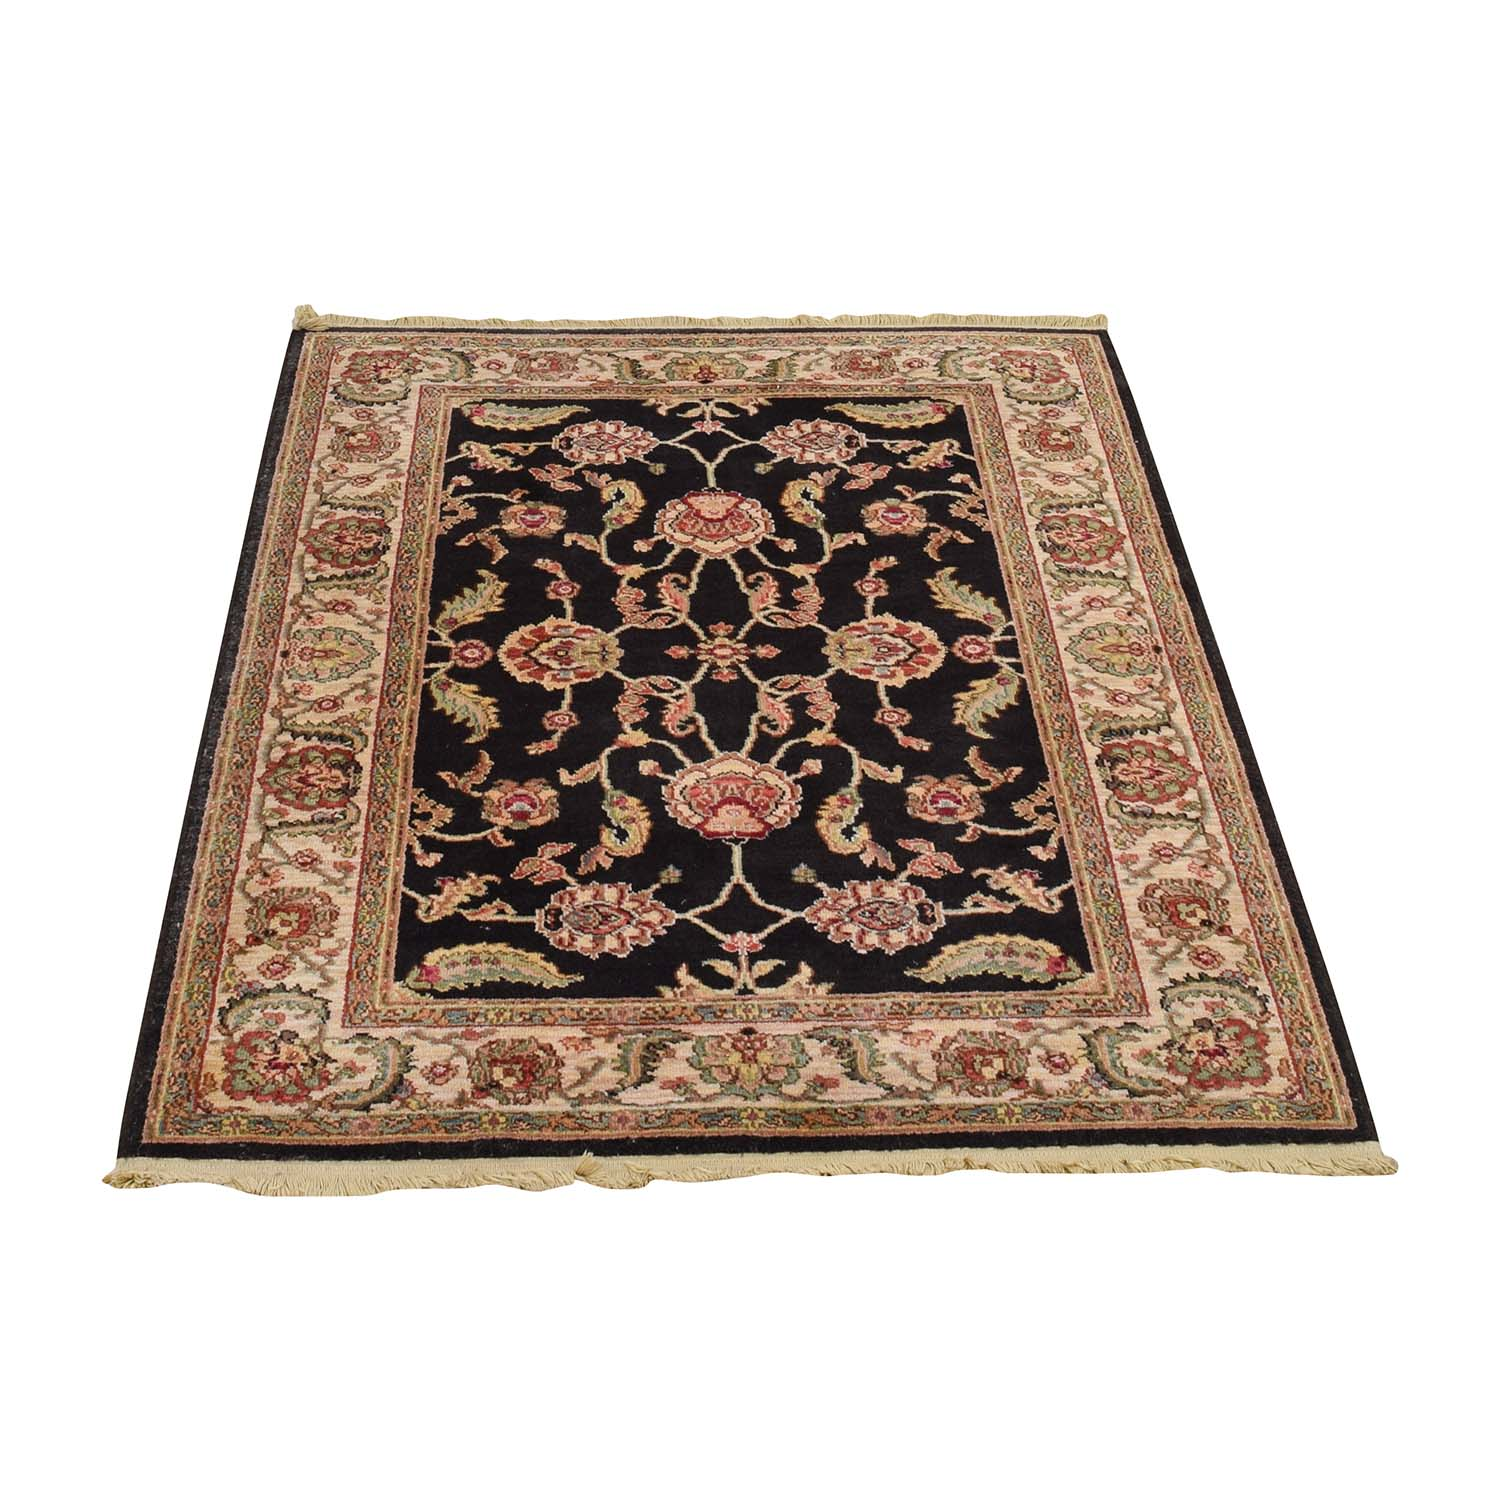 buy Safavieh Multi-Colored Floral Rug Safavieh Rugs